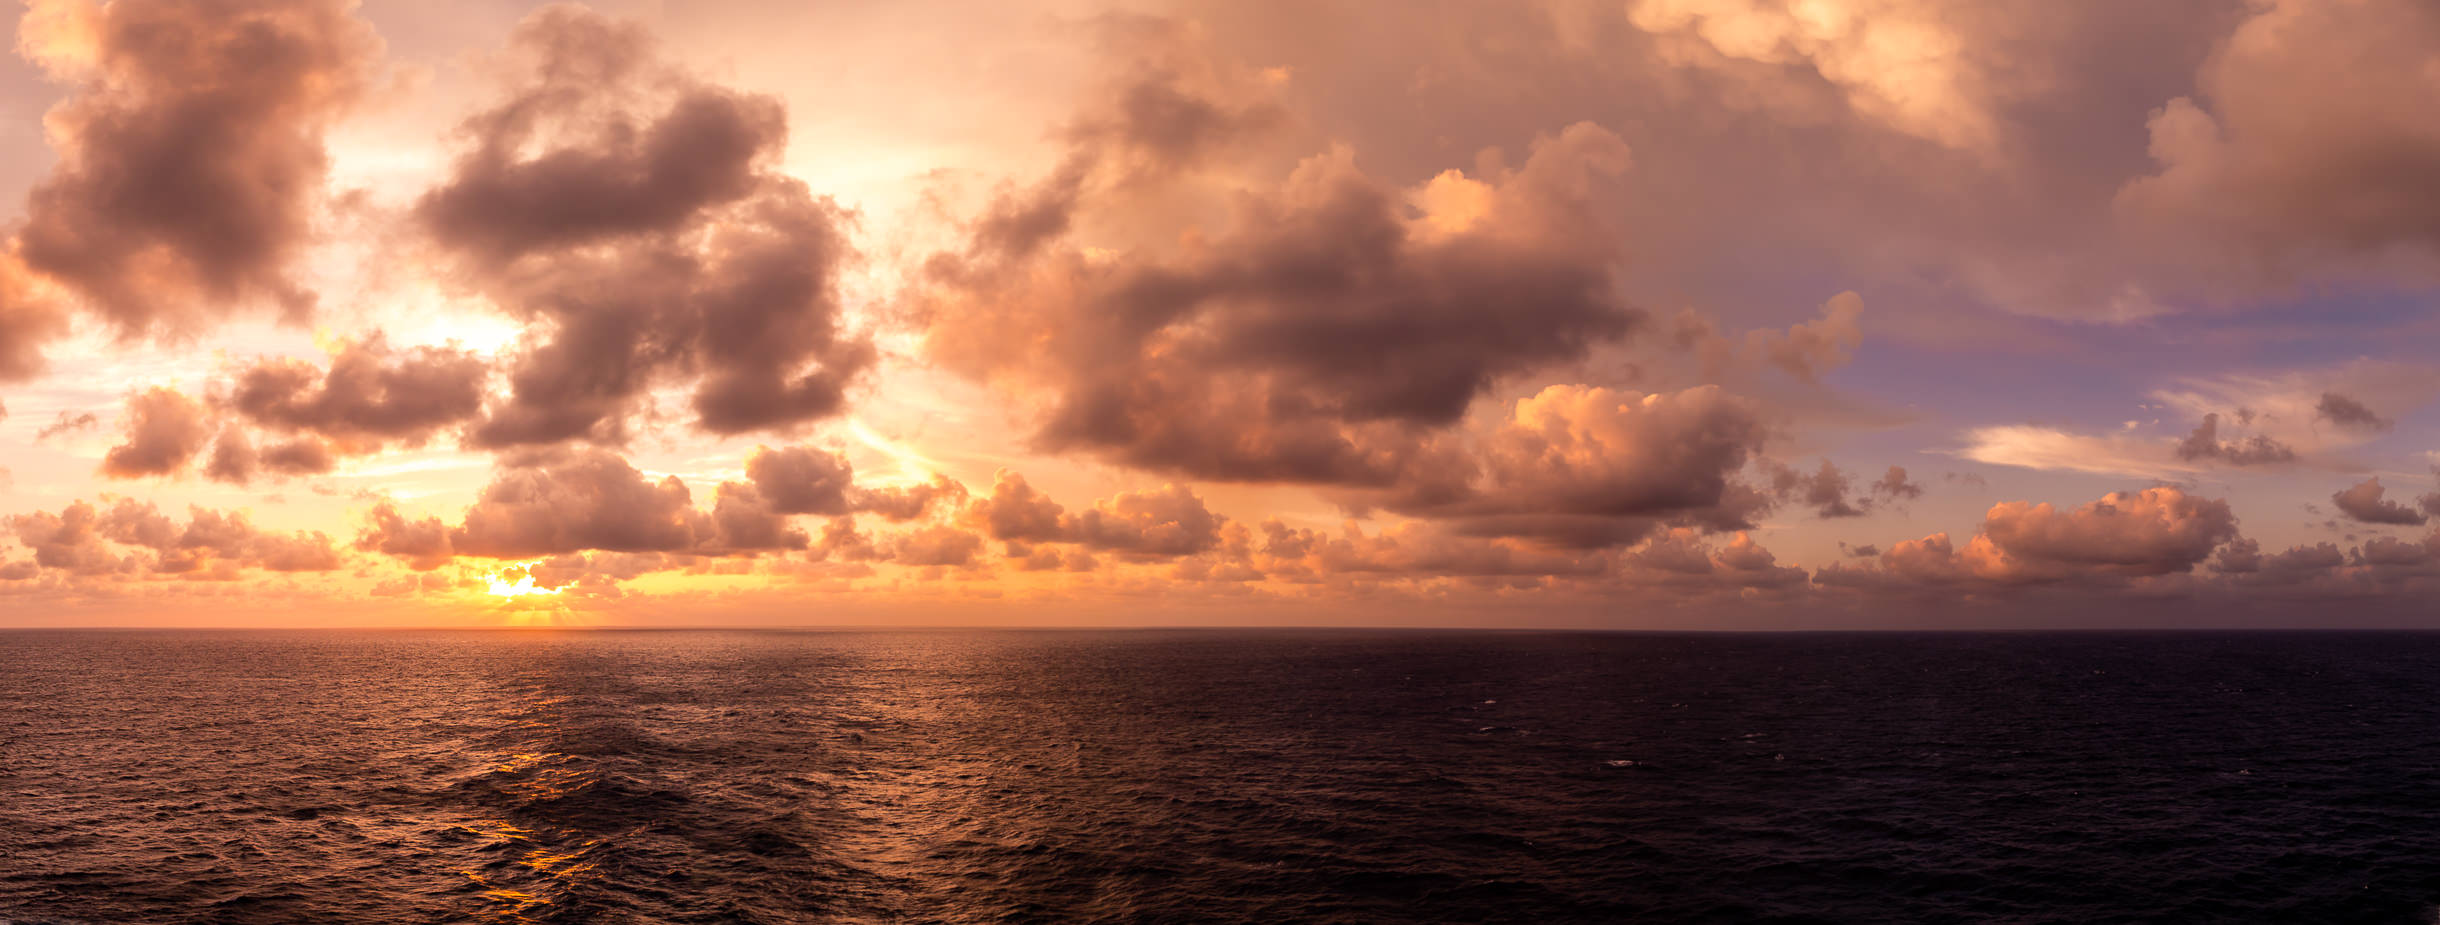 The morning sun shines through the clouds somewhere in the Gulf of Mexico.